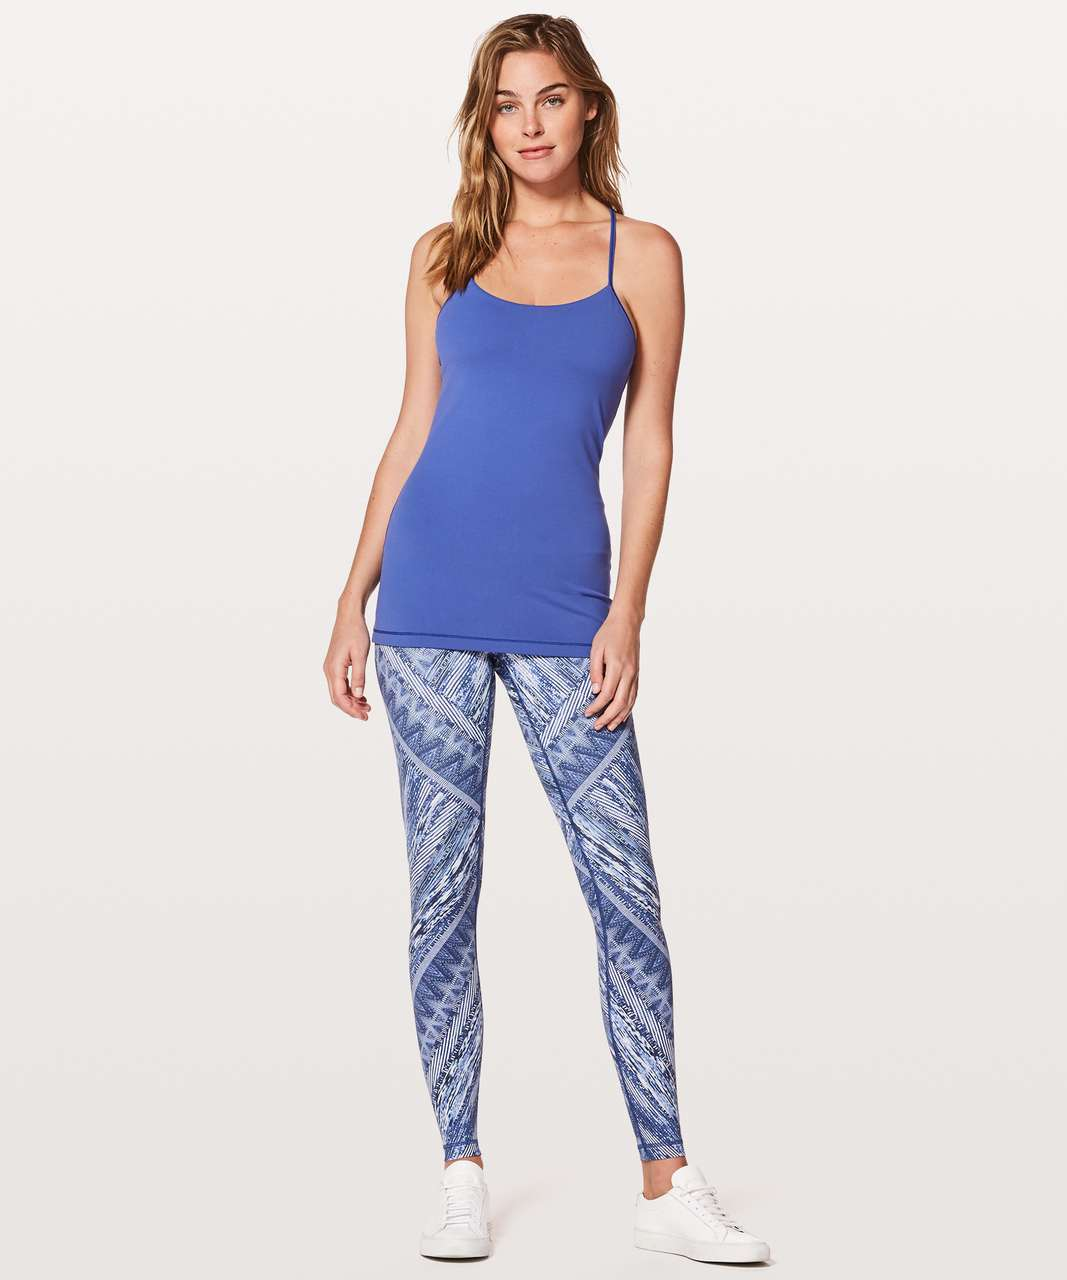 Lululemon Power Pose Tank *Light Support For A/B Cup - Moroccan Blue